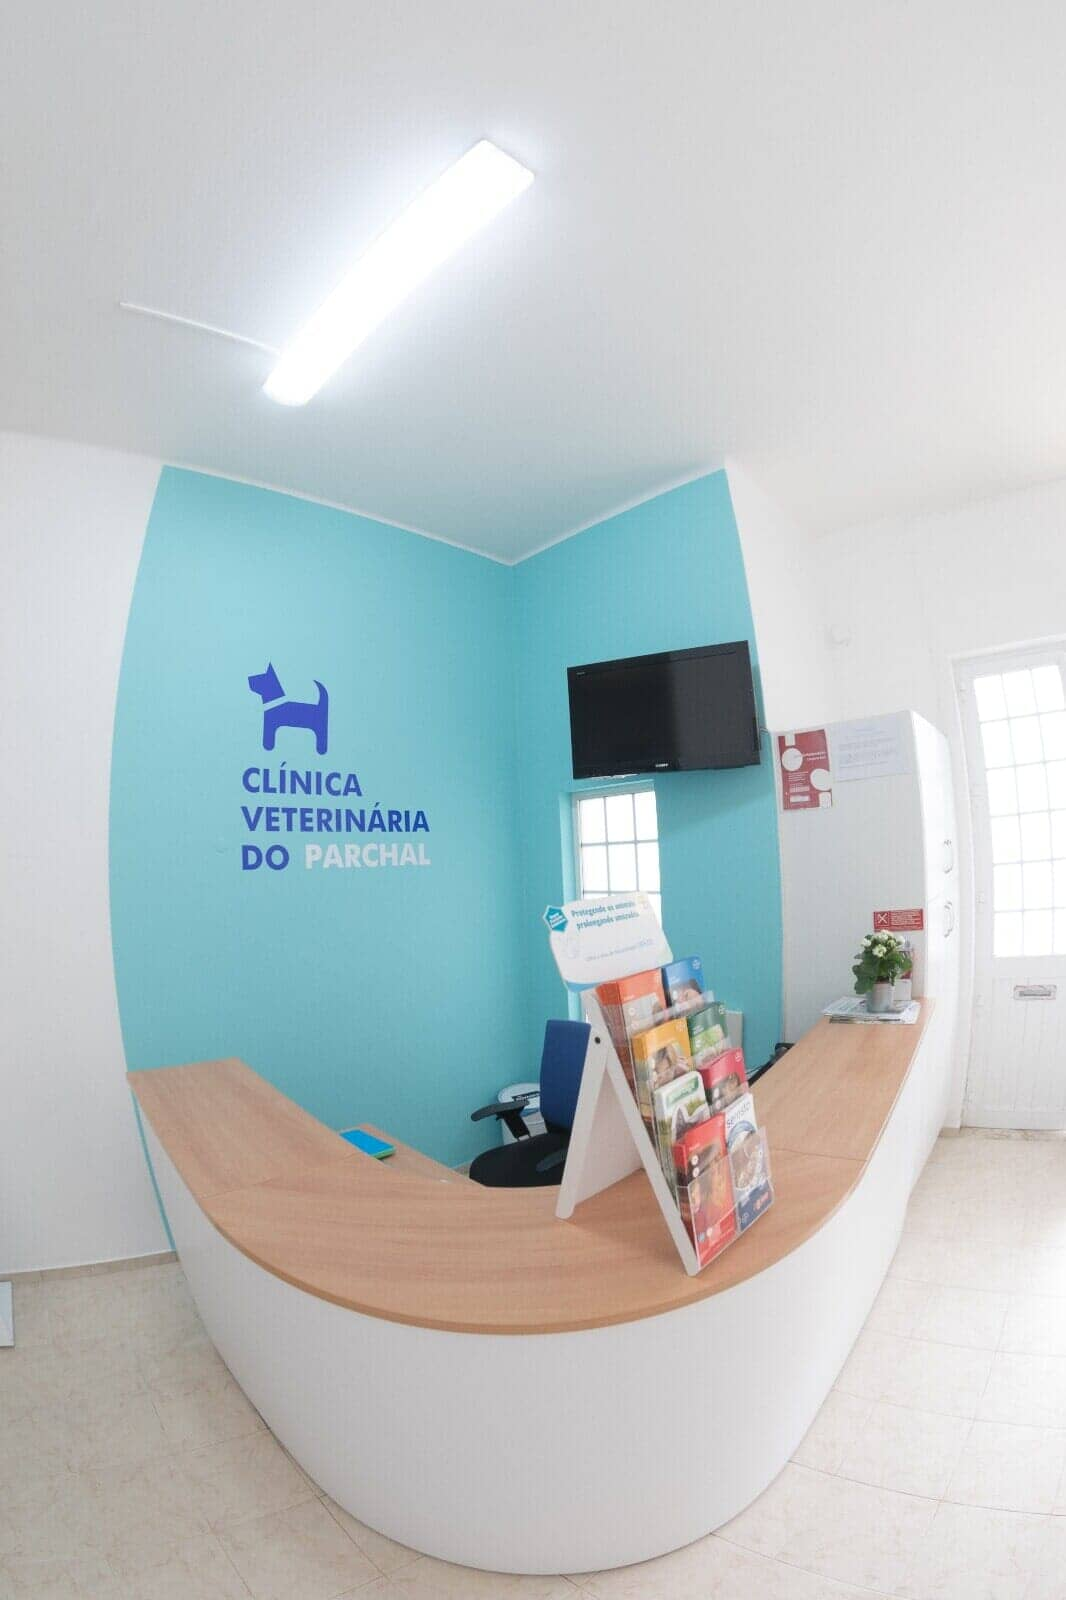 Veterinarian Algarve